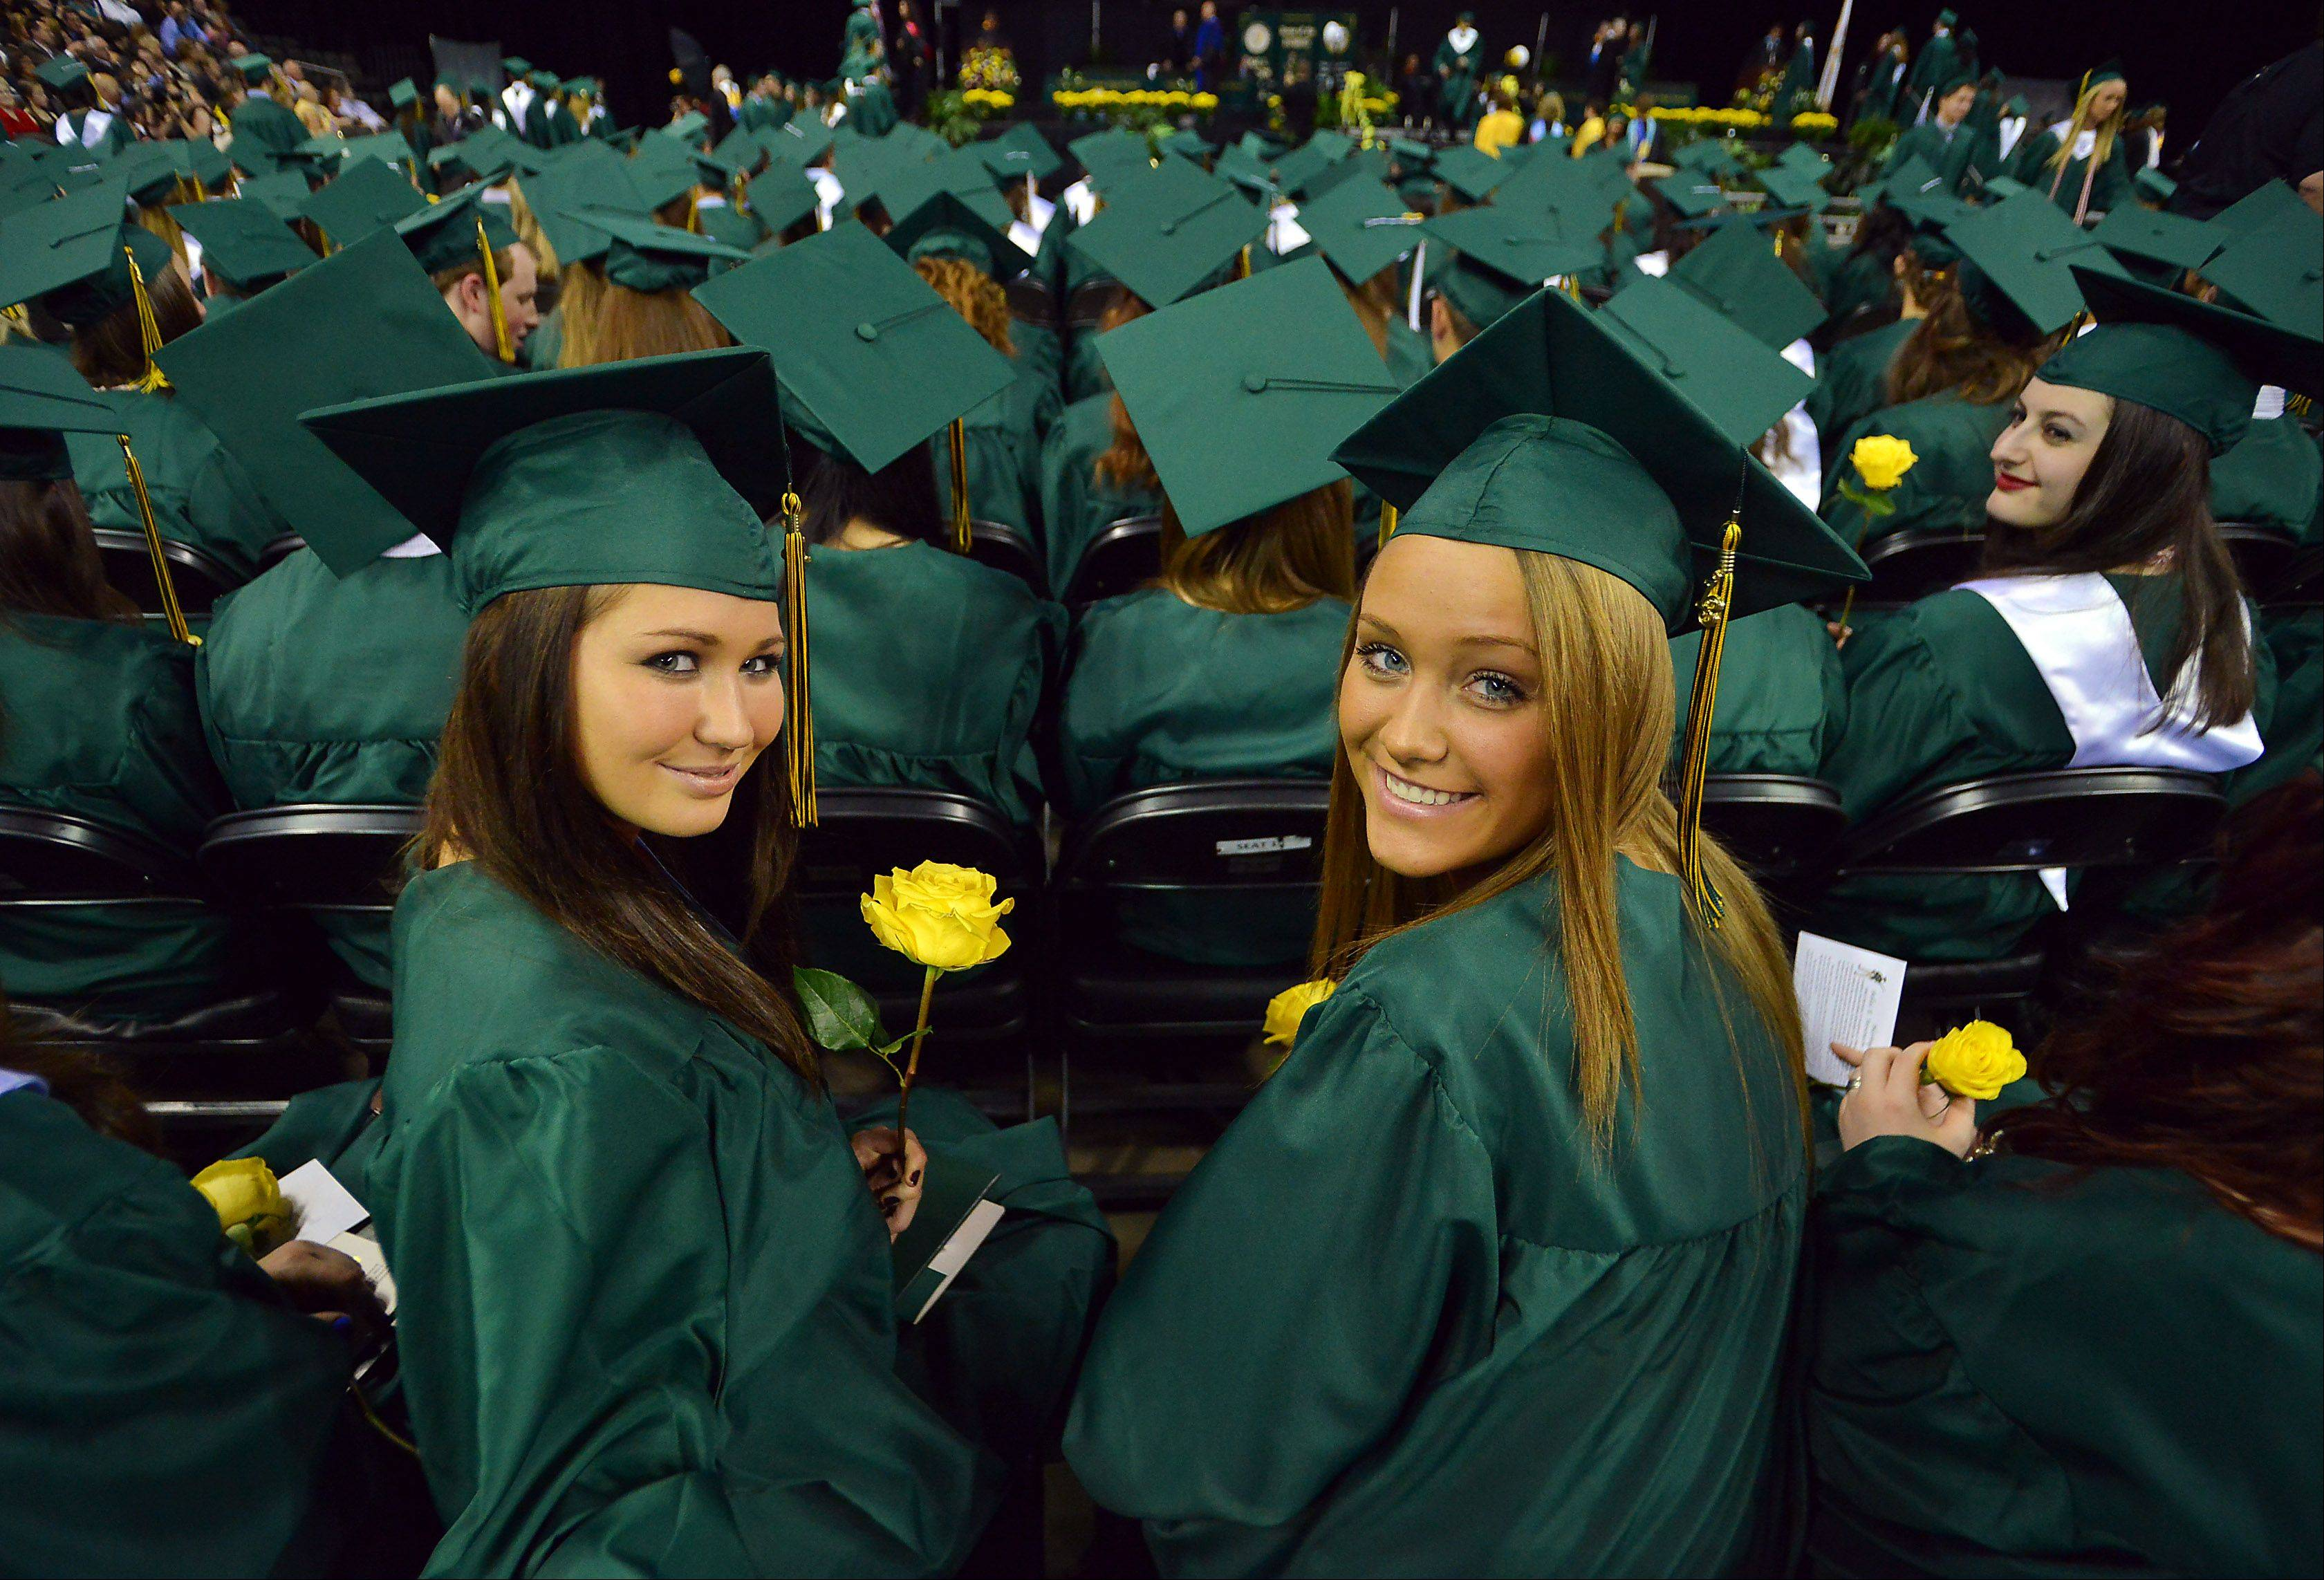 Left to right, Kellienne Sita,18, of Kildeer and Monika Smolen,18, of Buffalo Grove participate in the Stevenson High School Commencement Program at the Sears Centre on Thursday.